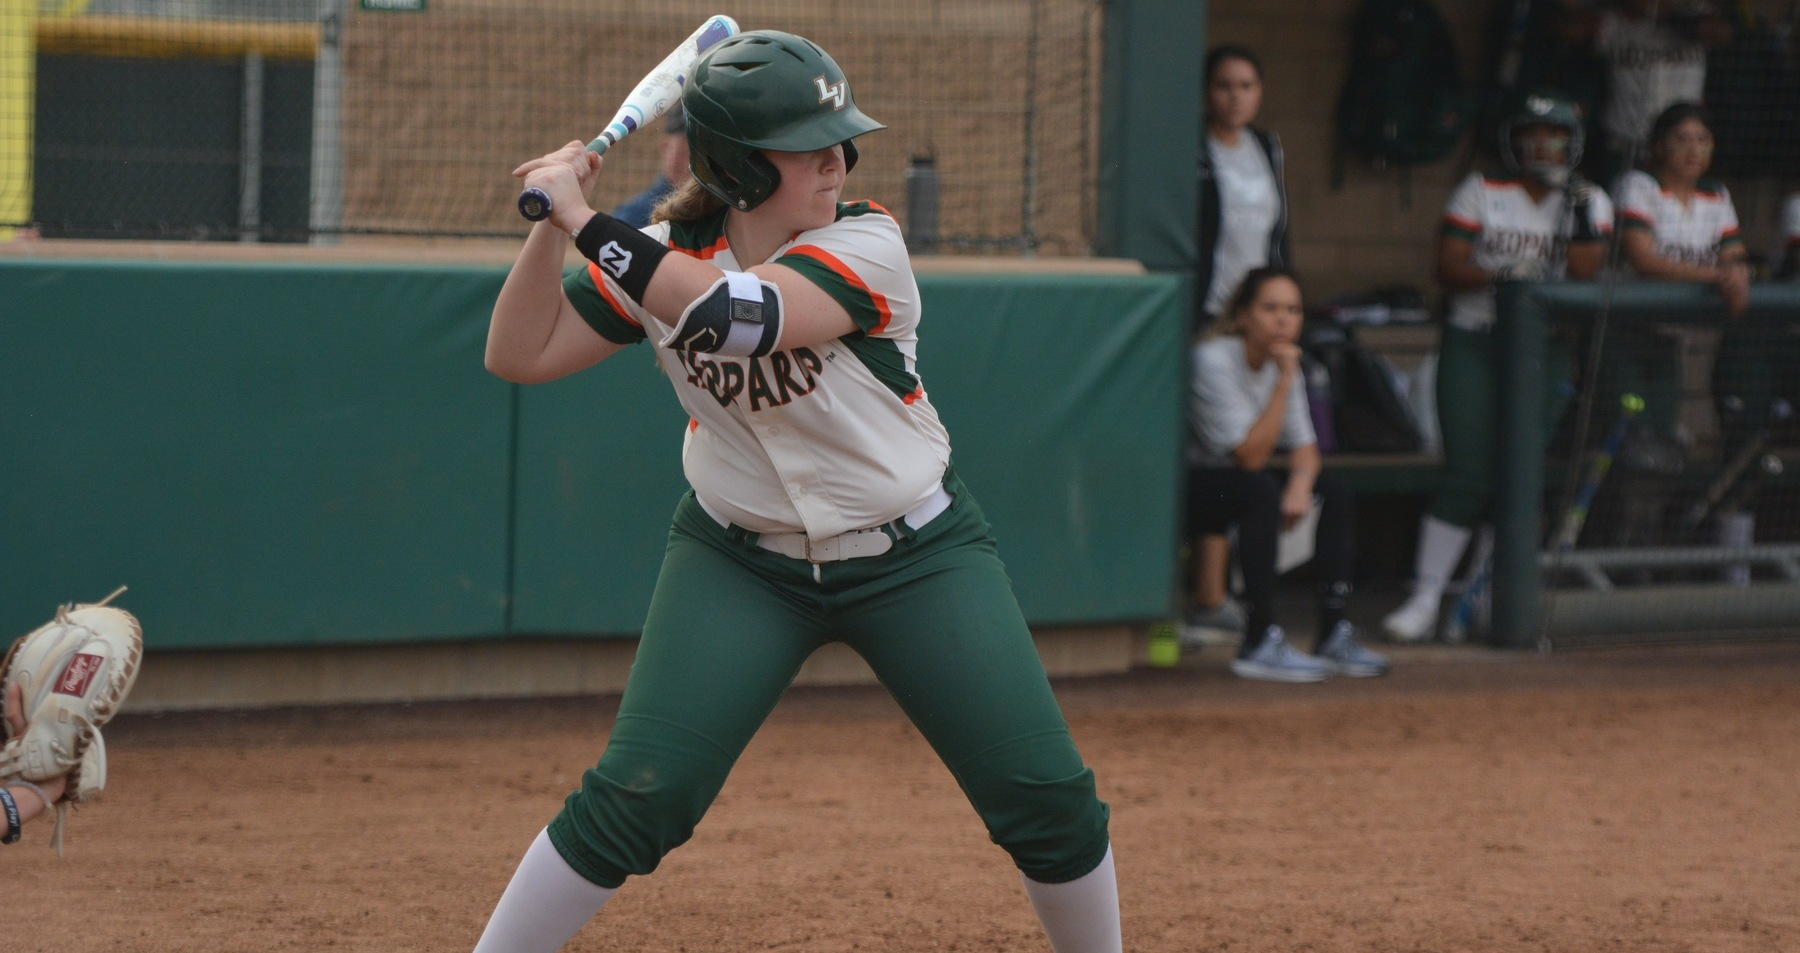 Leopards split with Firebirds on opening day